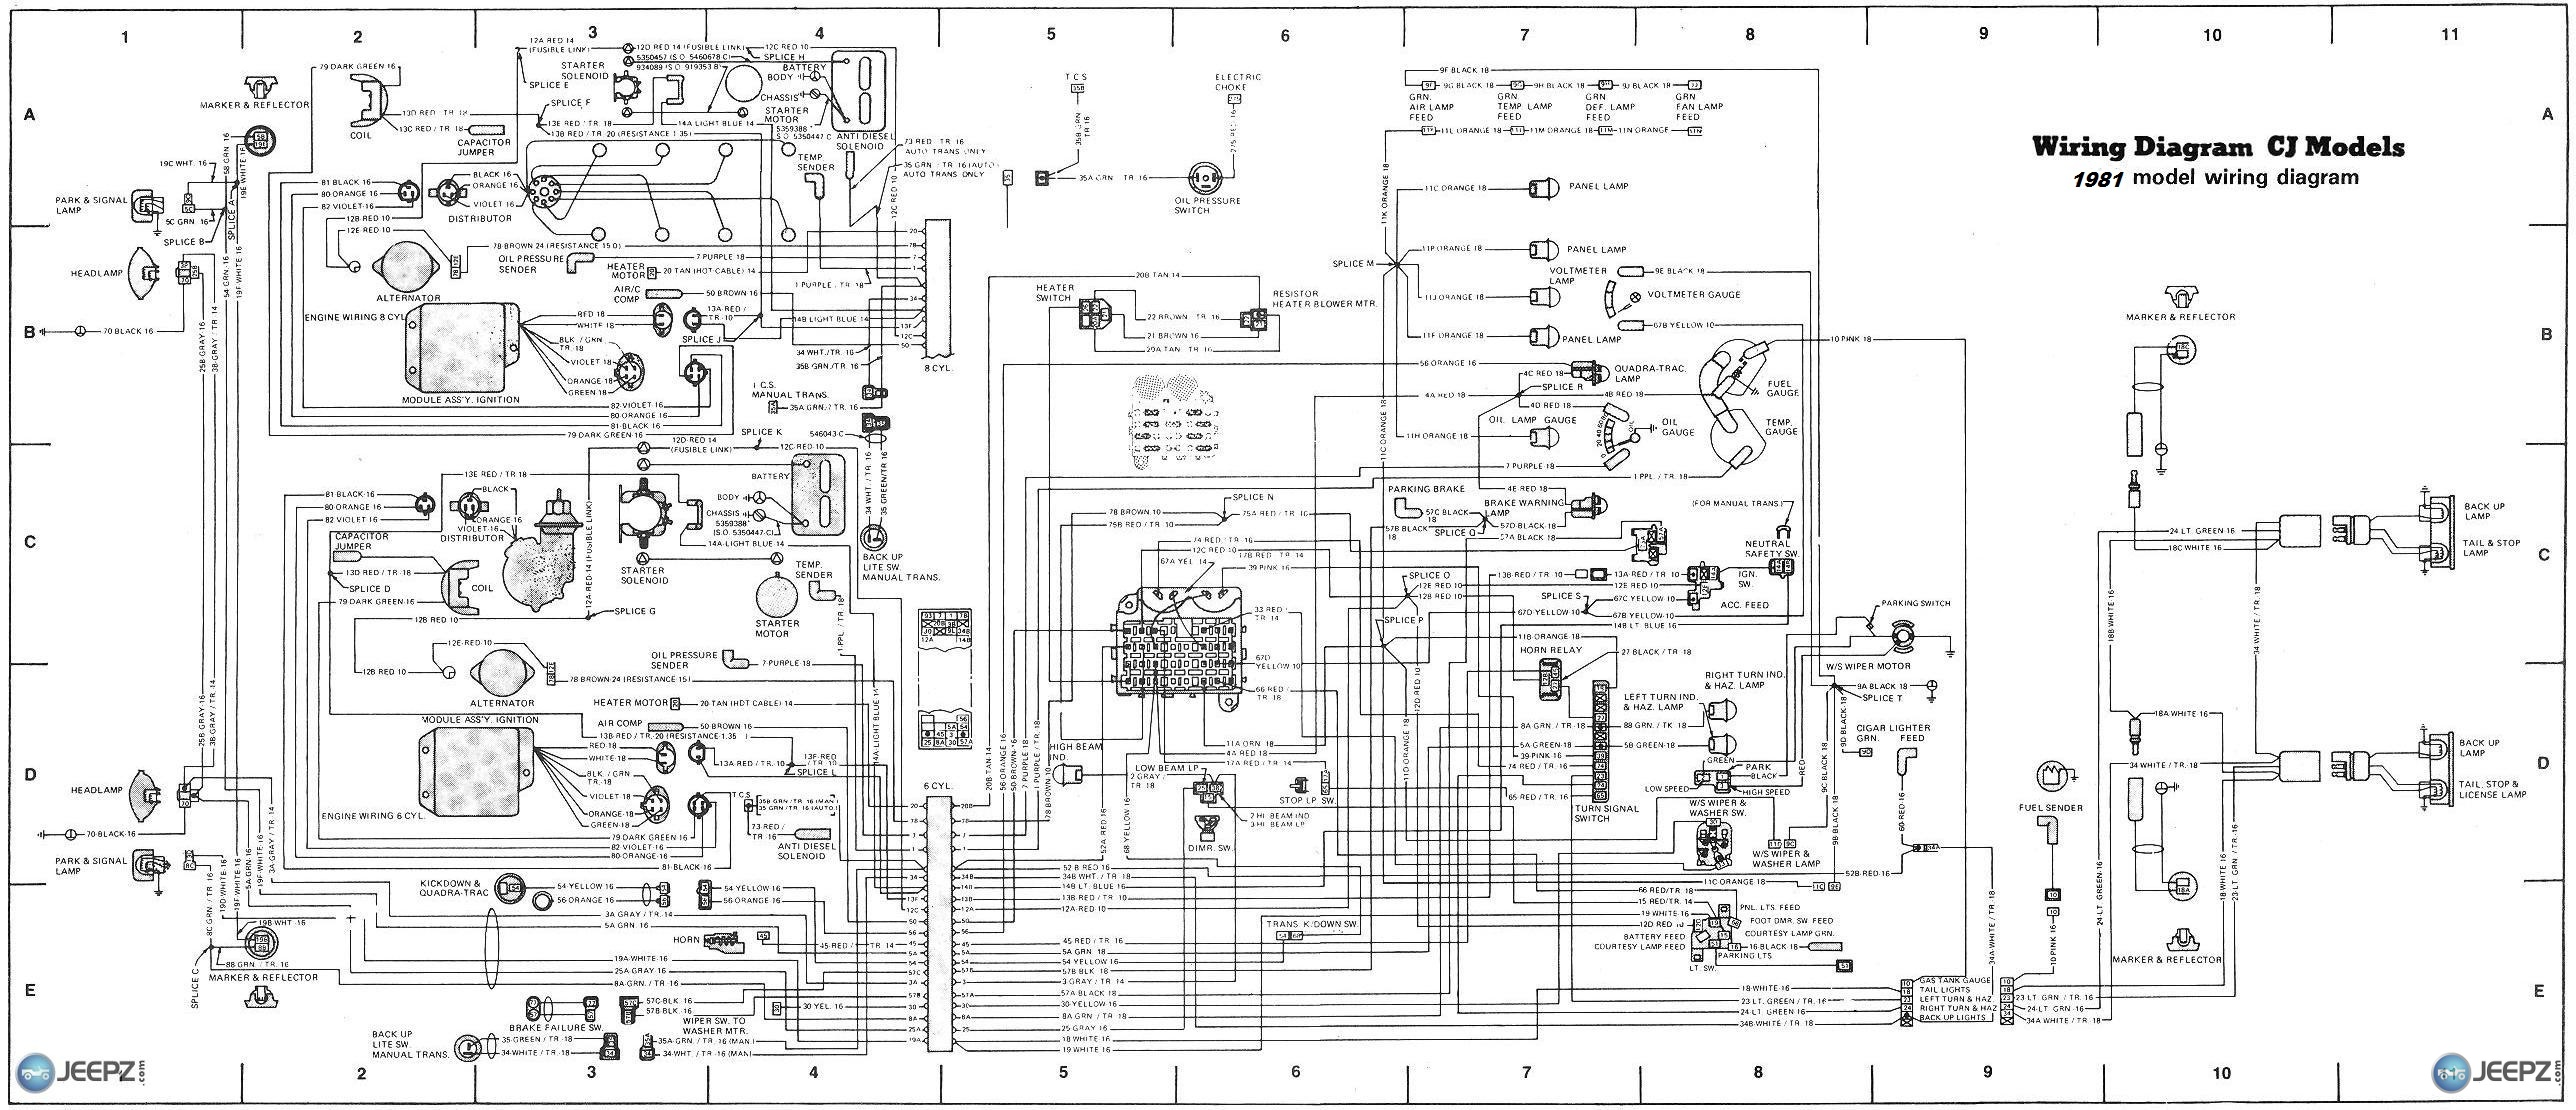 cj 7 wire diagram 1977 Jeep CJ7 Wiring-Diagram 1977 Jeep CJ7 Wiring-Diagram